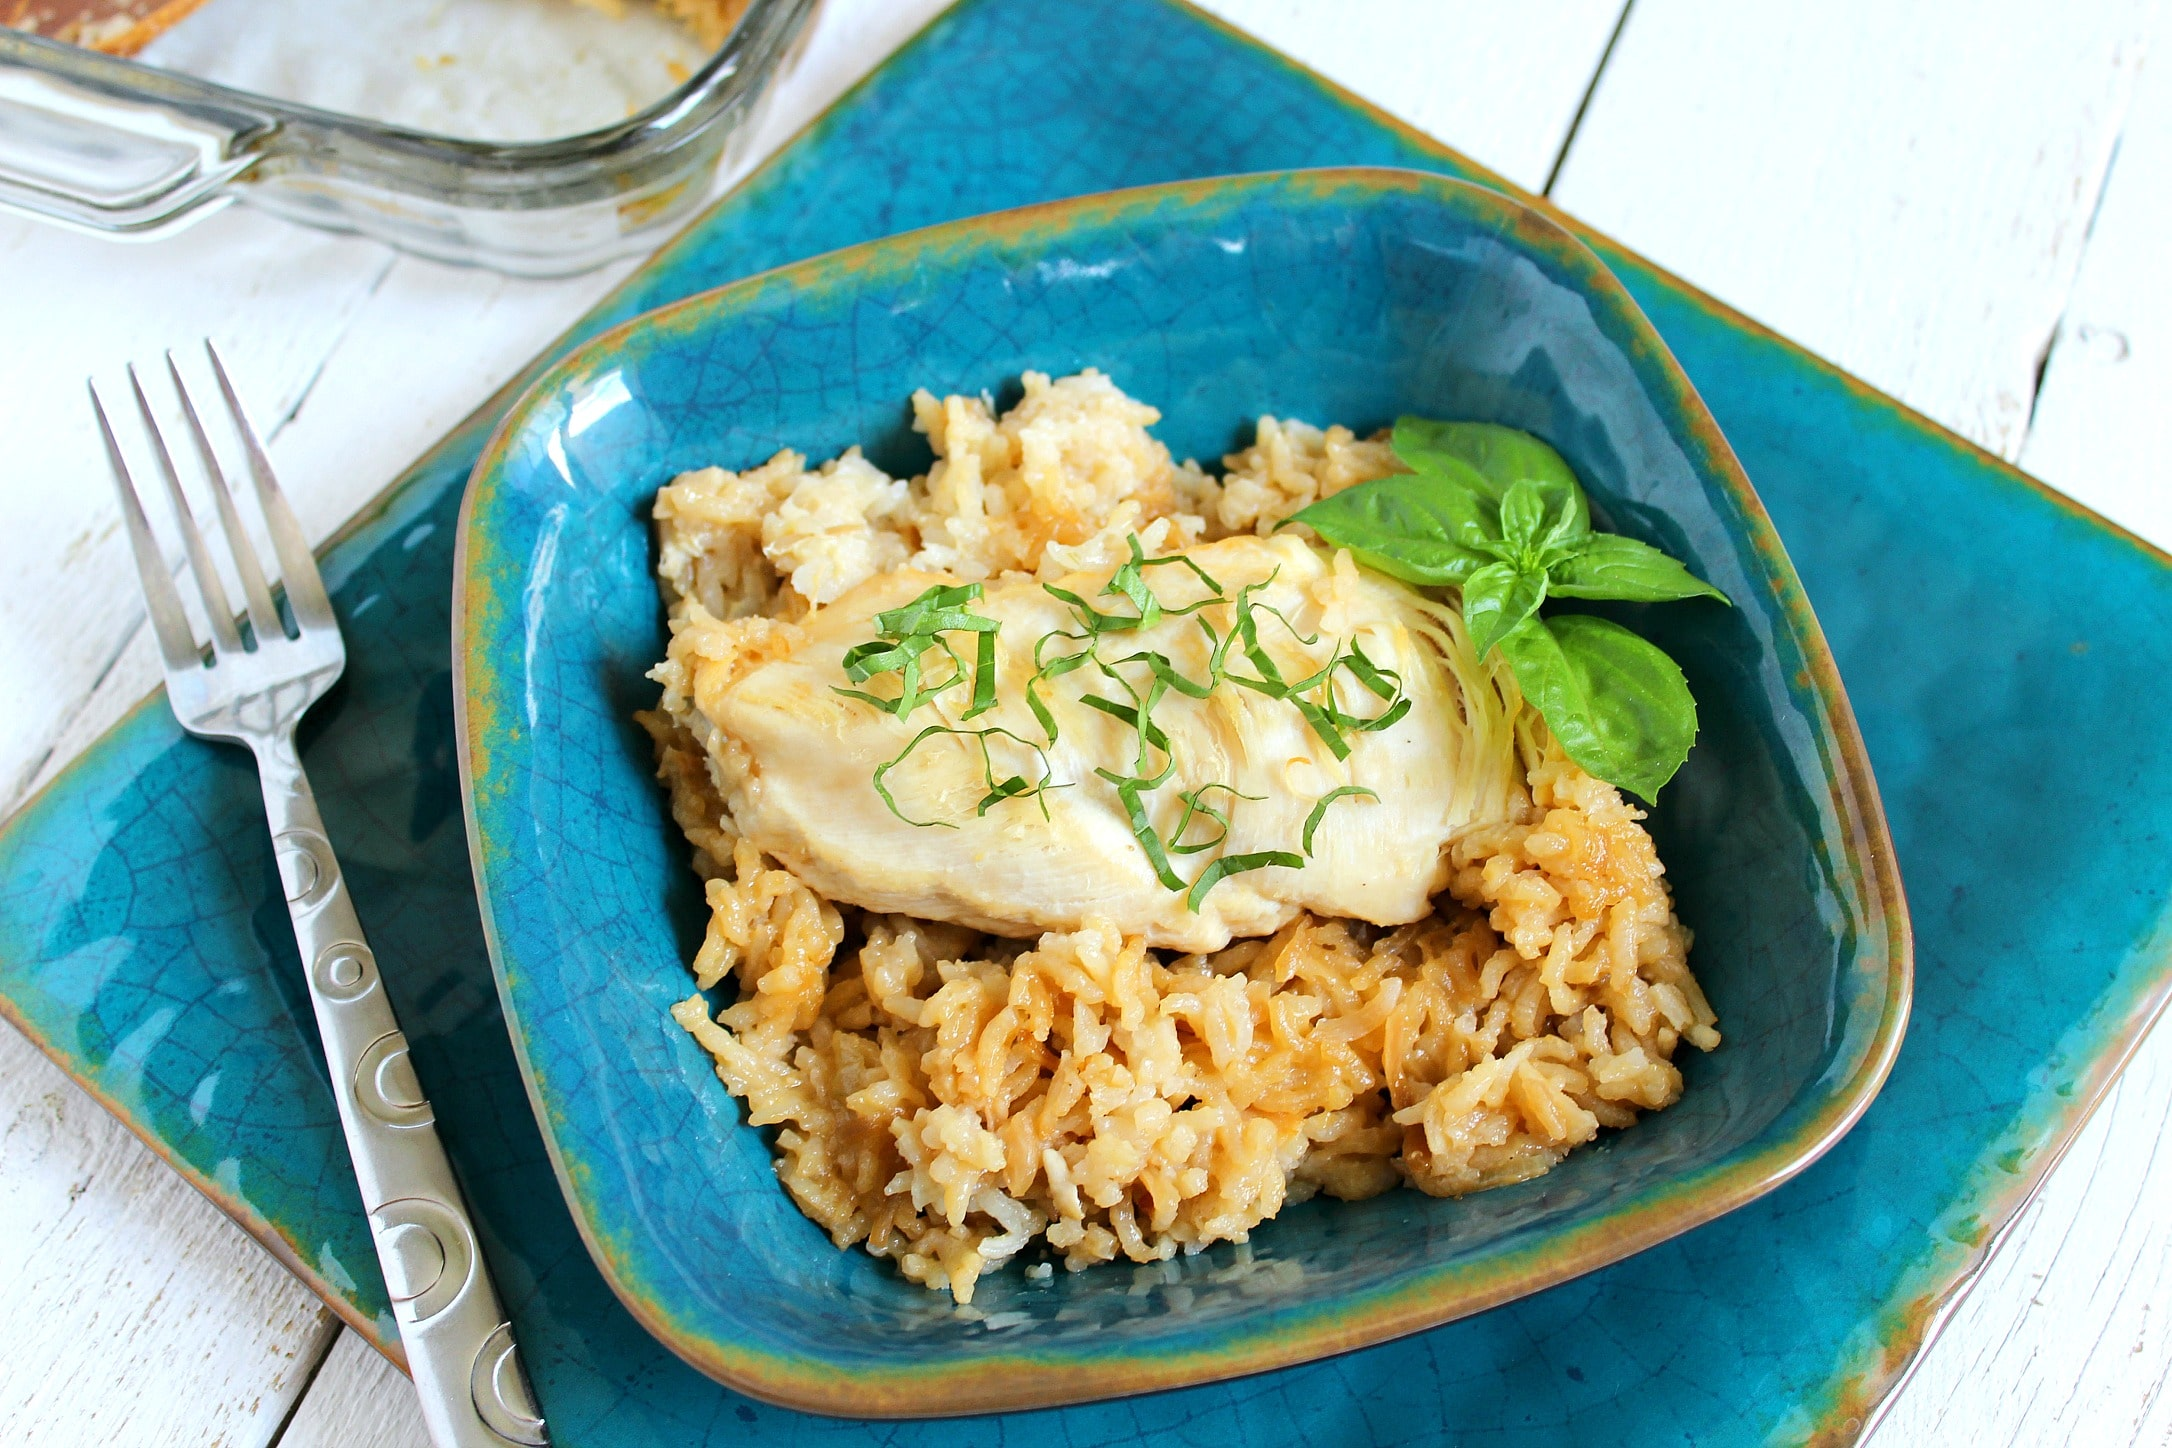 This chicken and rice casserole is so delicious and easy. It's a perfect weeknight recipe.